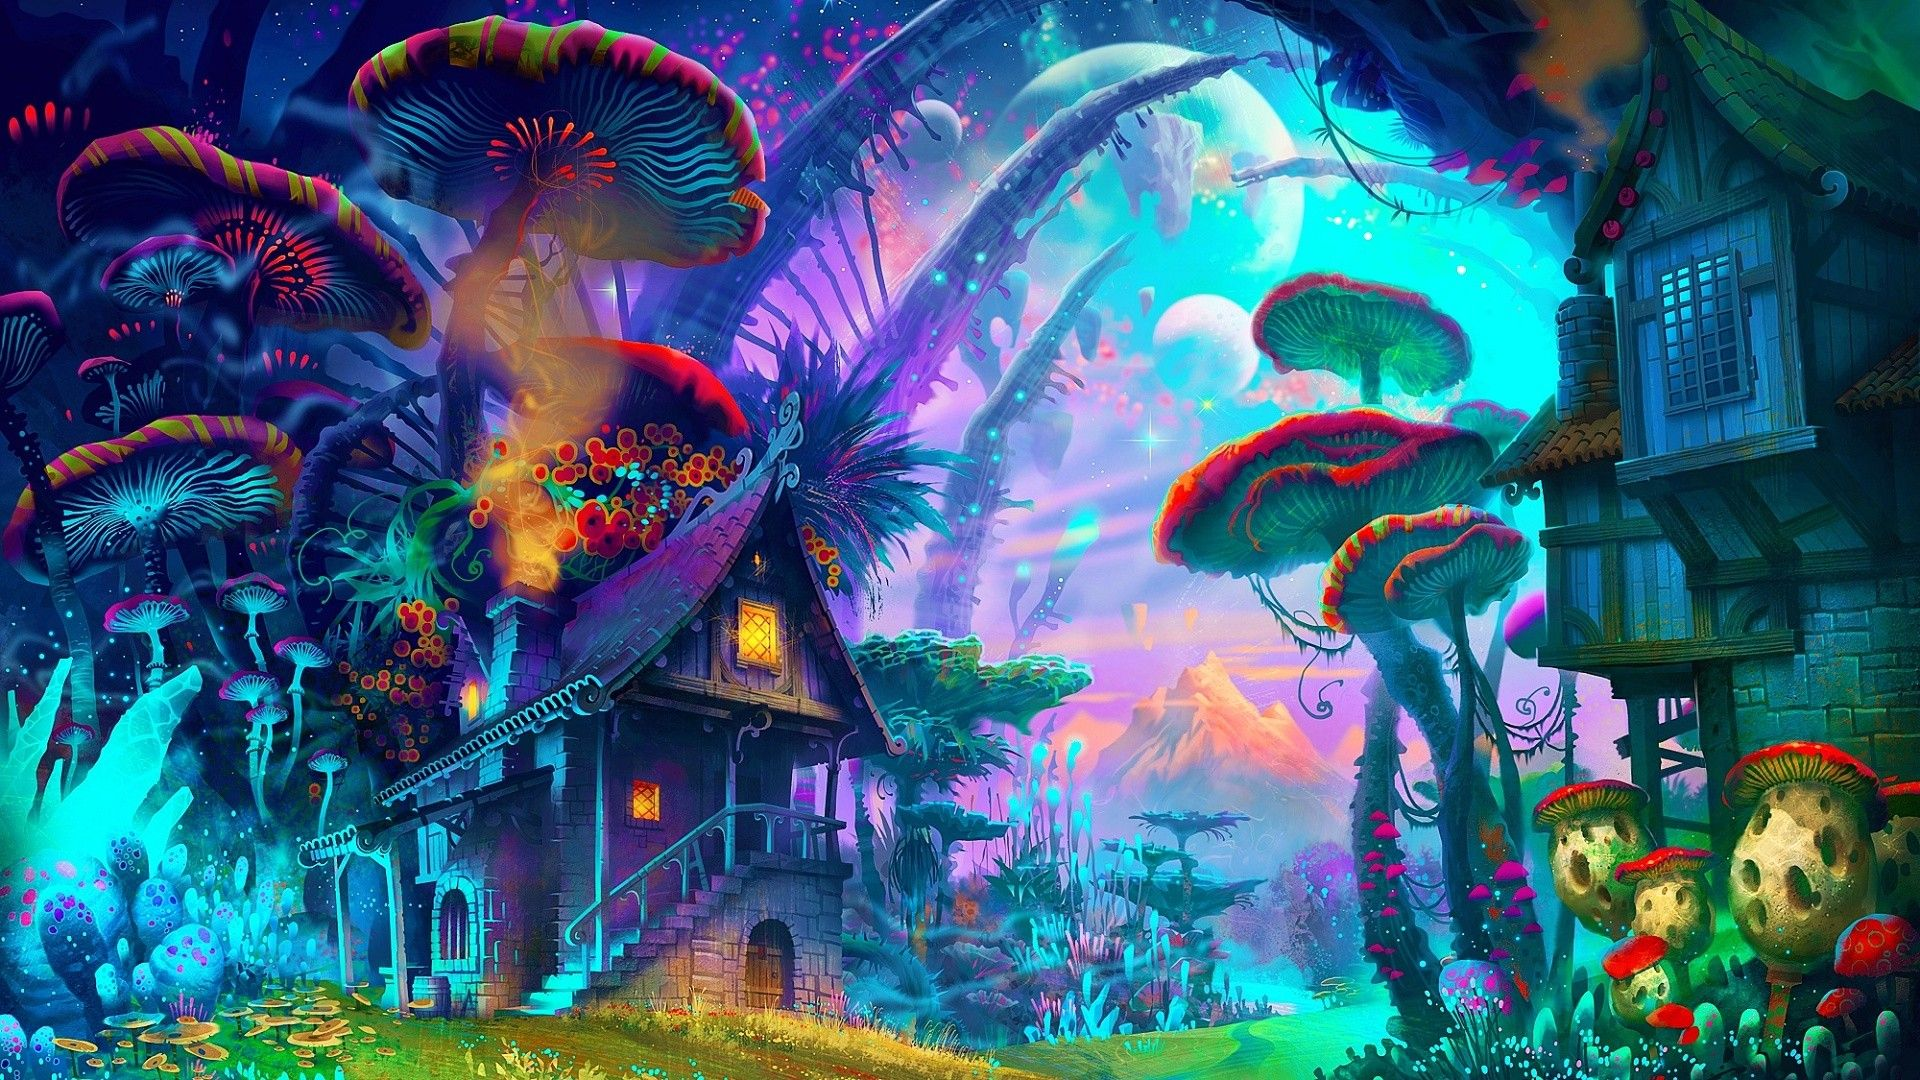 General 1920x1080 fantasy art drawing nature psychedelic